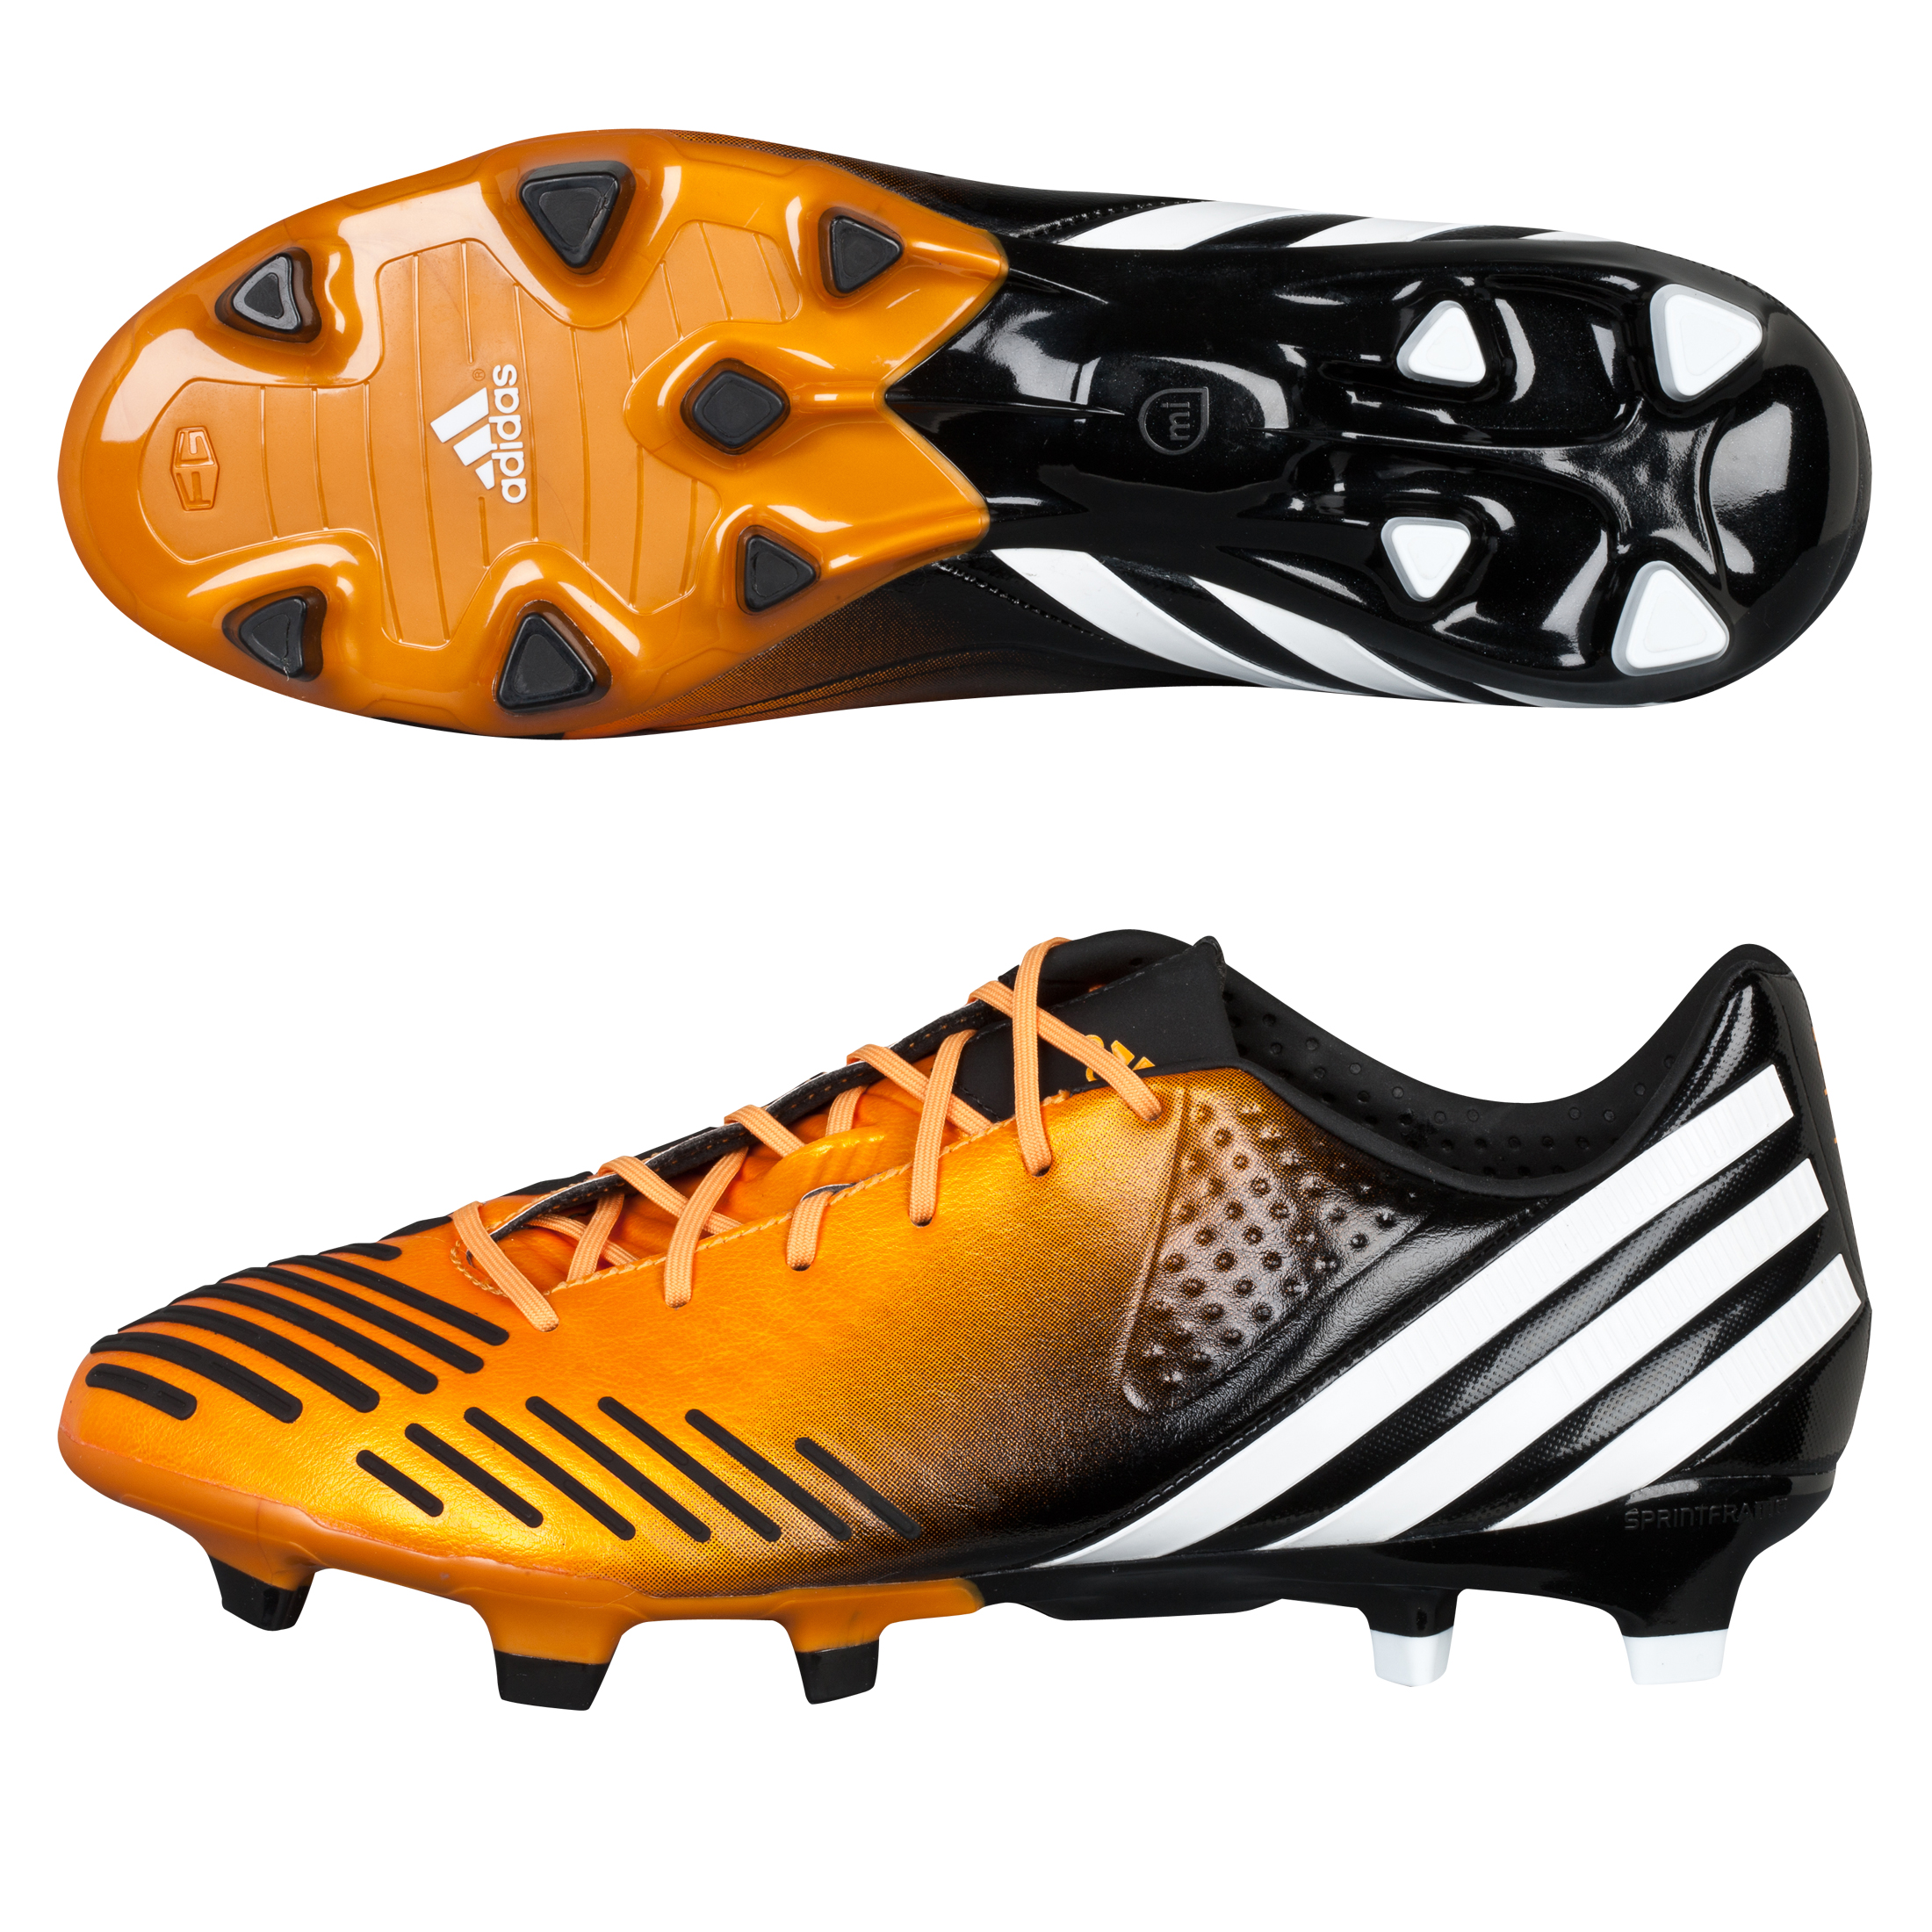 Adidas Predator LZ TRX Firm Ground Football Boots - Bright Gold/White/Black